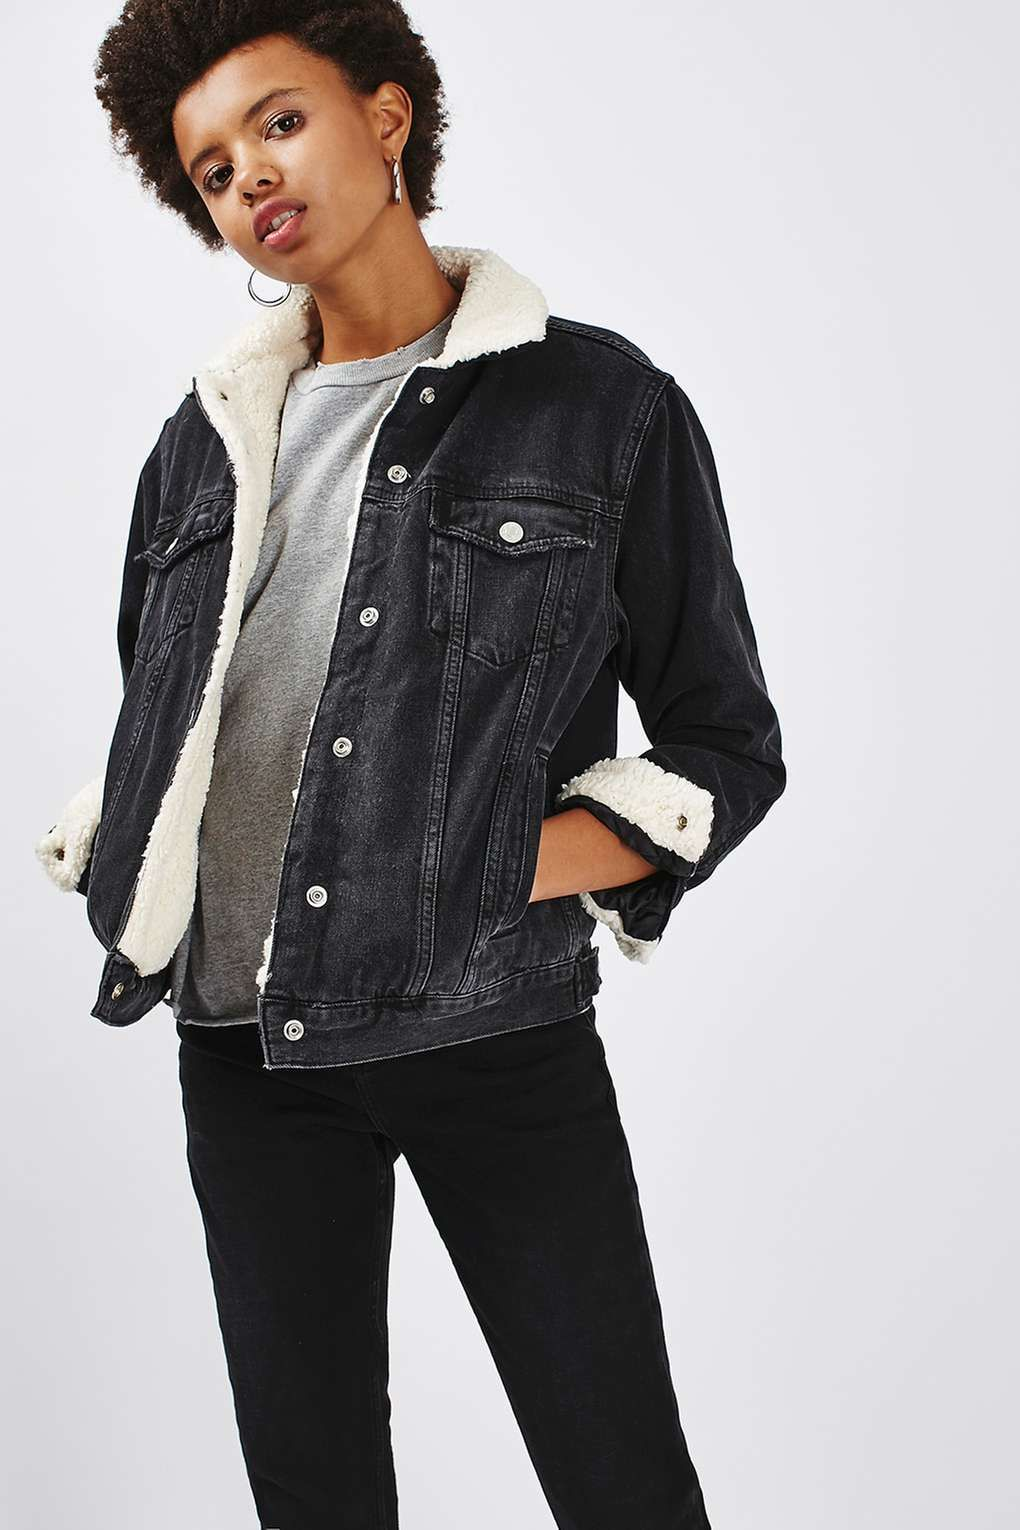 09ebf769a97 MOTO Denim Western Oversized Jacket - Jackets   Coats - Clothing - Topshop  Europe